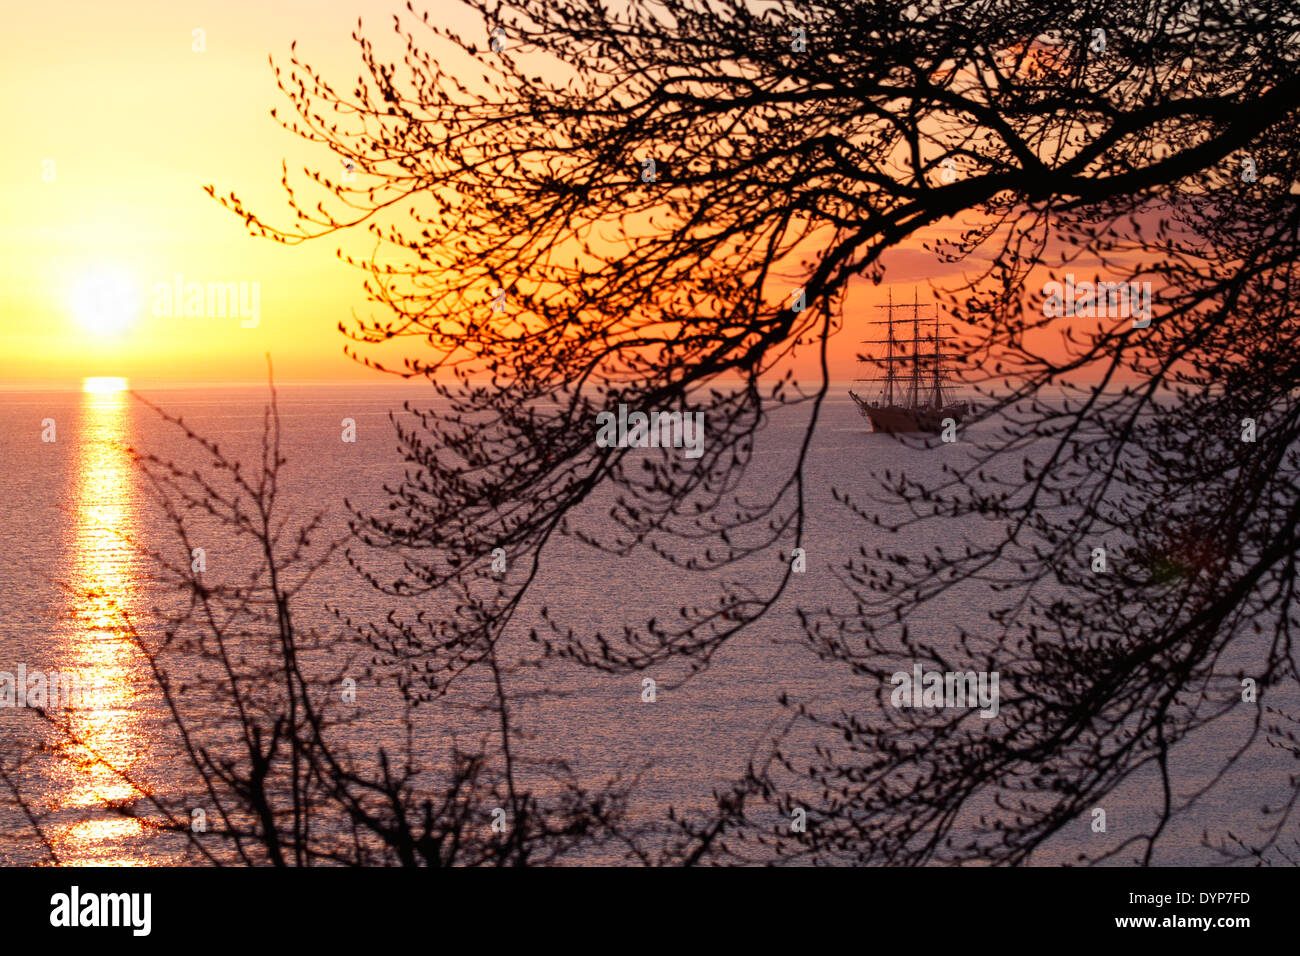 Georg Stage, a three-masted full-rigged Danish training tall ship at sunrise on the Sound in Denmark one spring morning. Ambience. - Stock Image